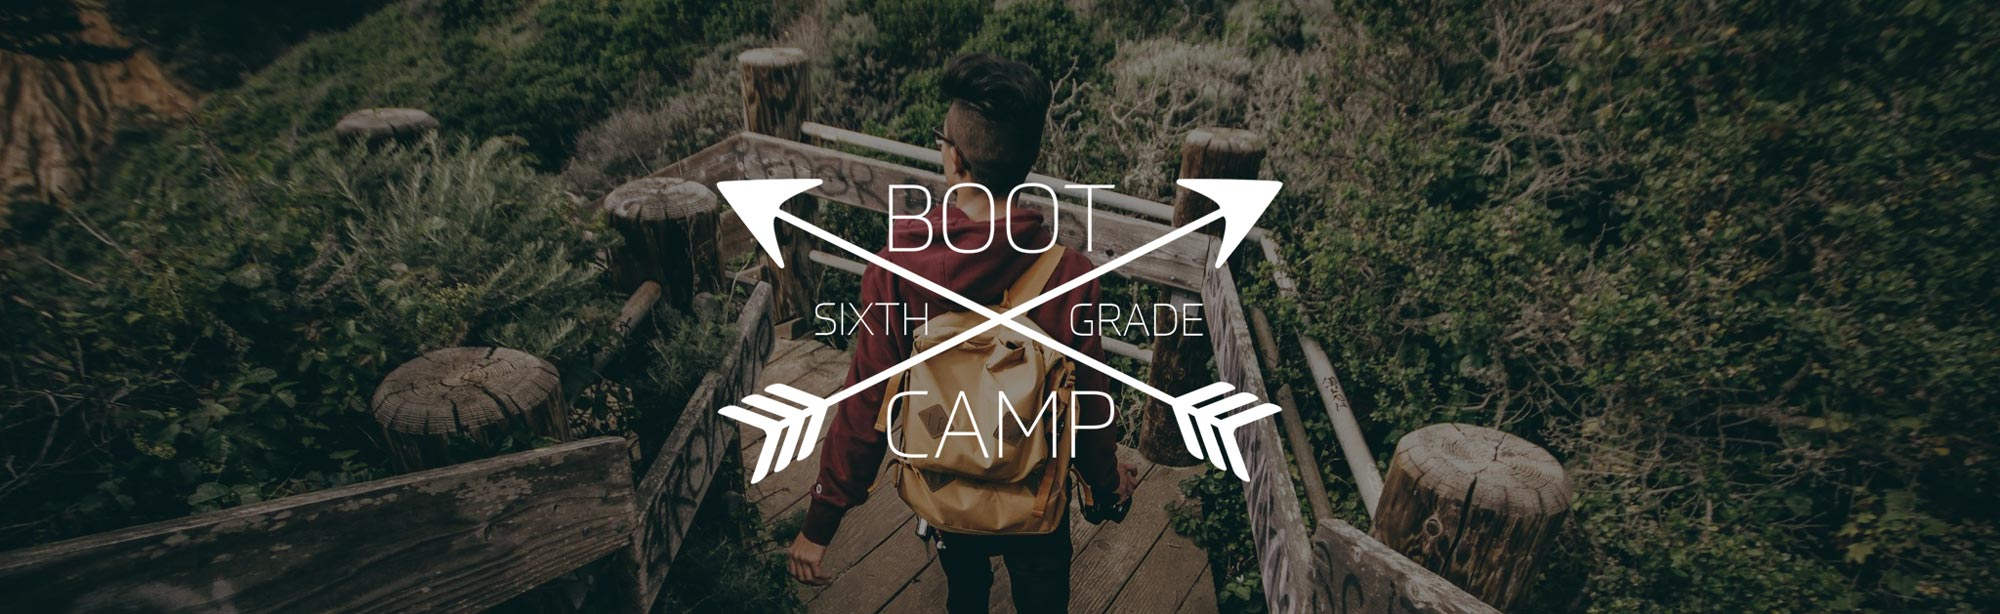 6th Grade Boot Camp - Grace Community Church